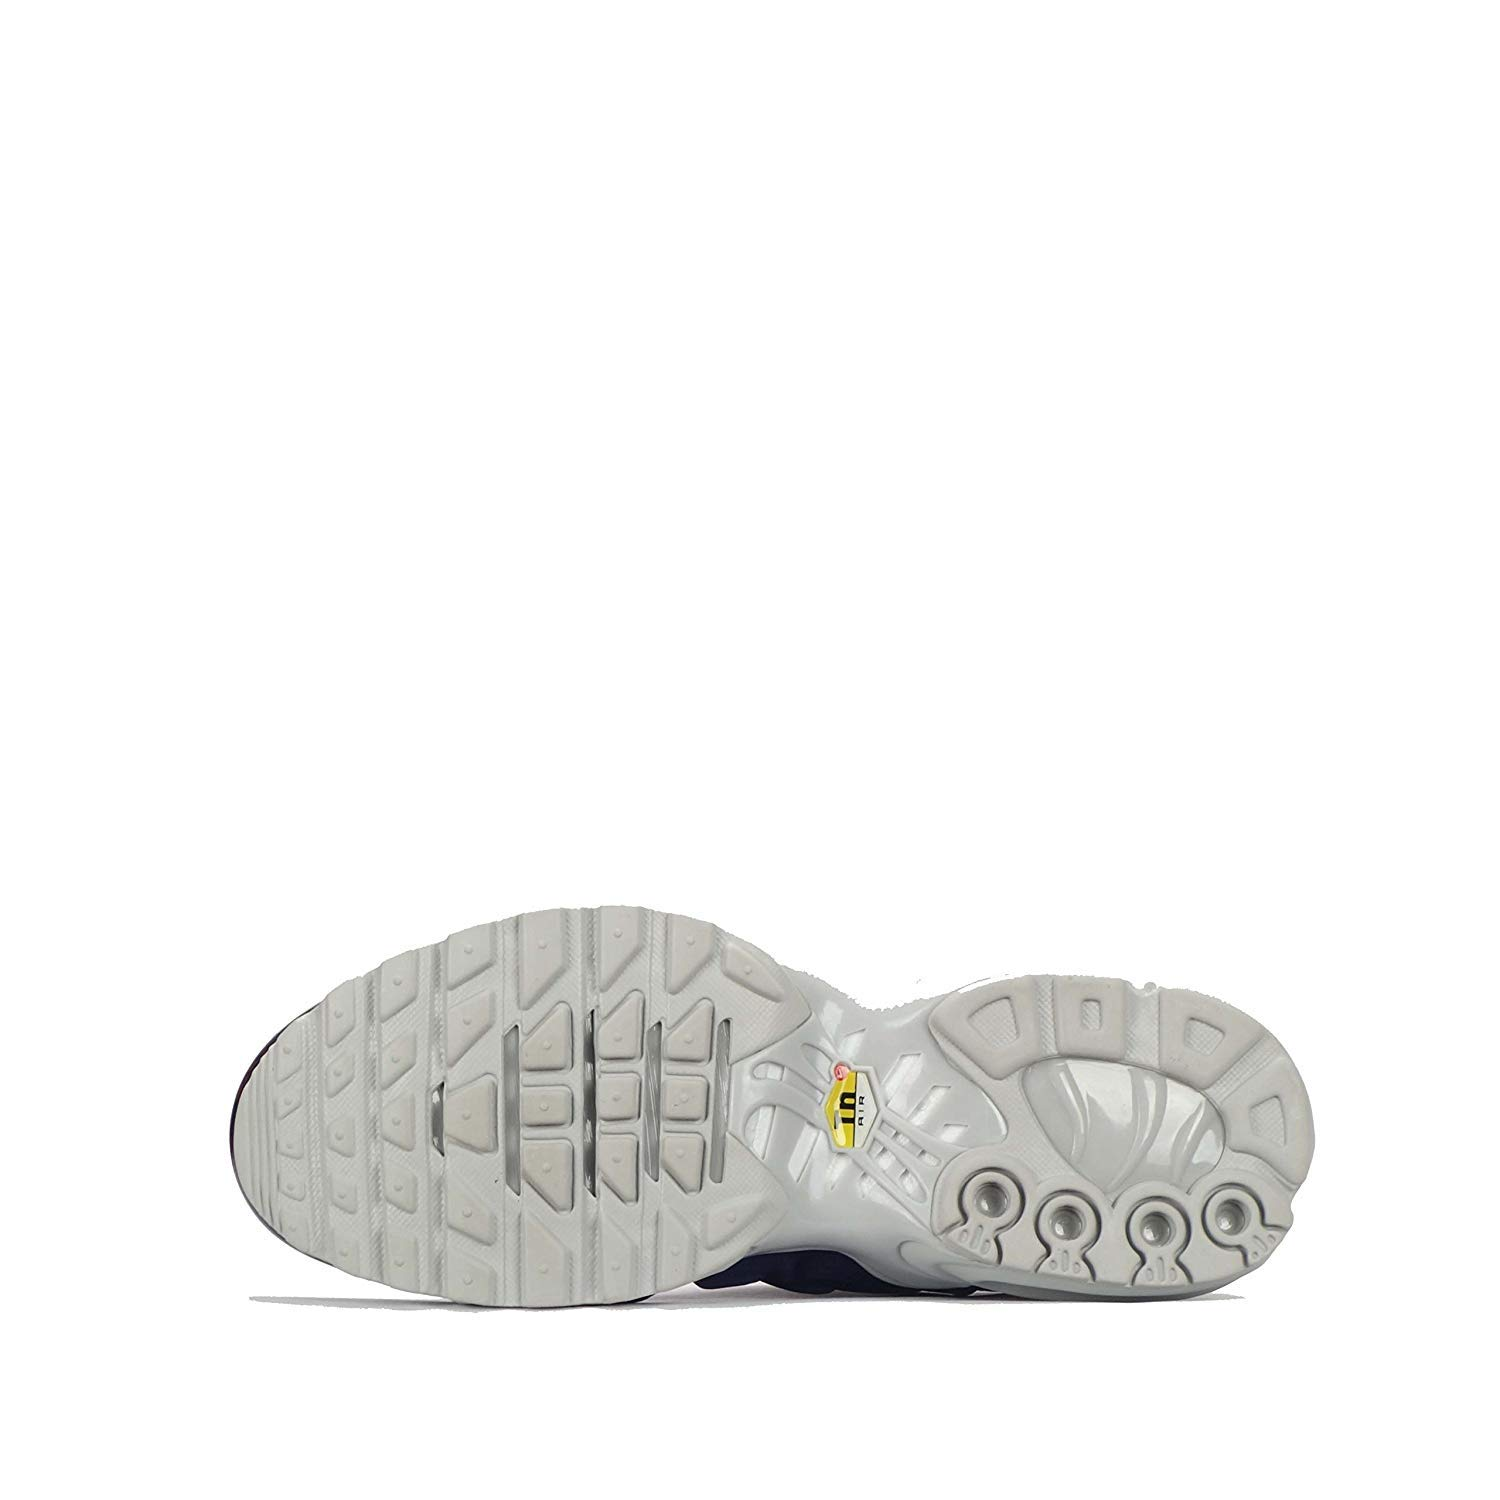 28db302a54 Amazon.com   Nike Womens Air Max Plus Slip Sp Running Trainers 940382  Sneakers Shoes   Road Running